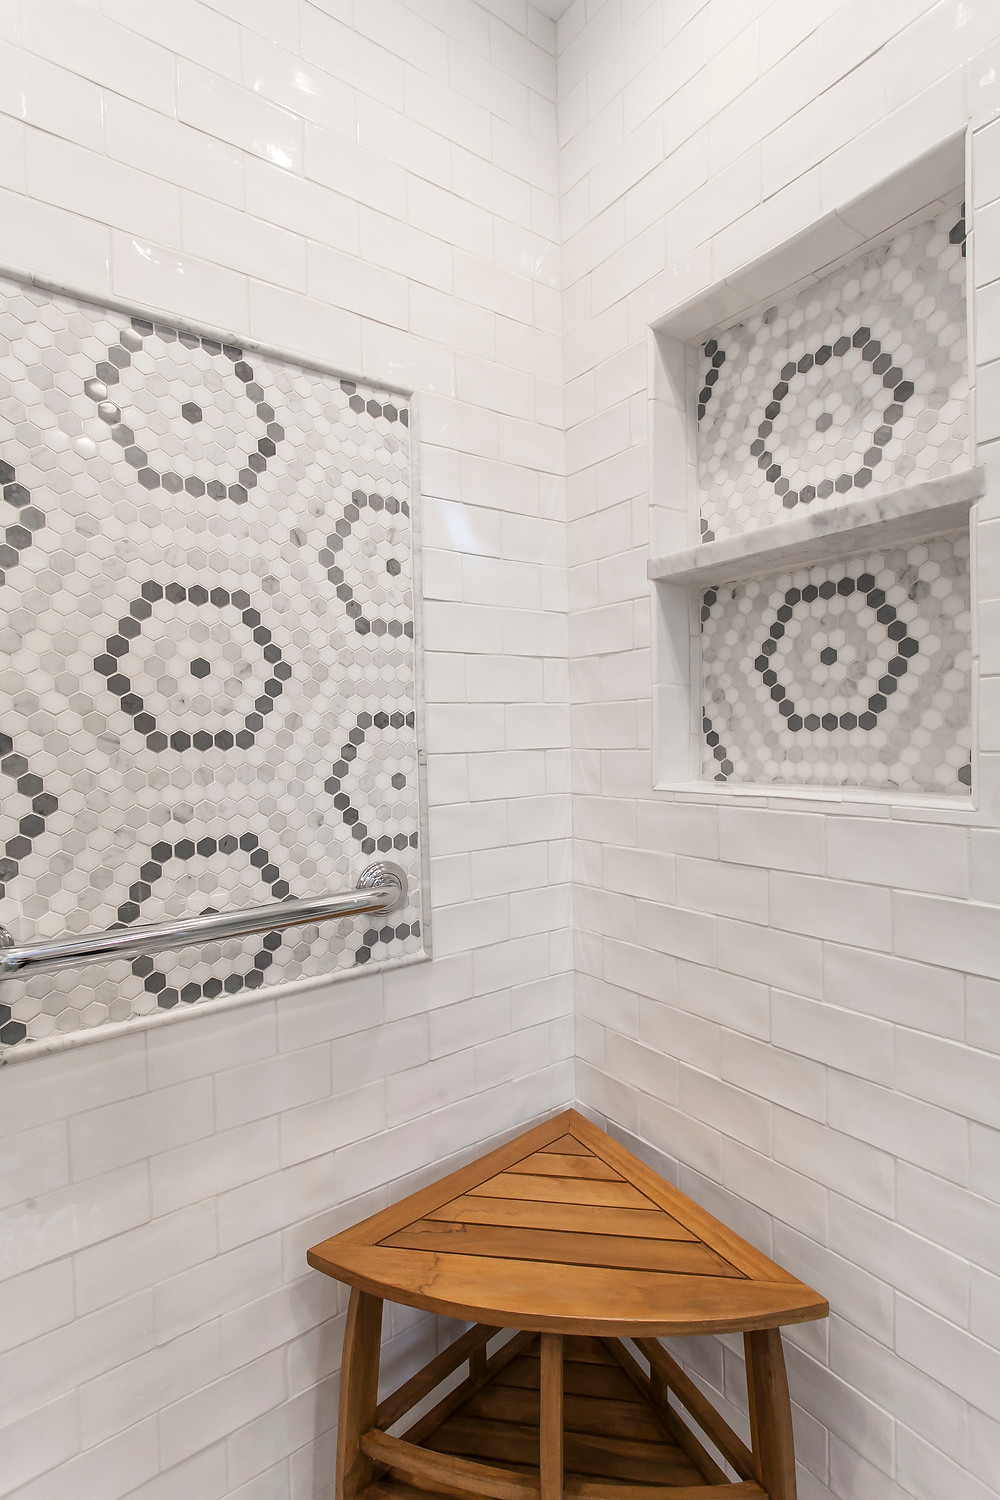 Mosaic tile inset and niches, ceramic subway tile